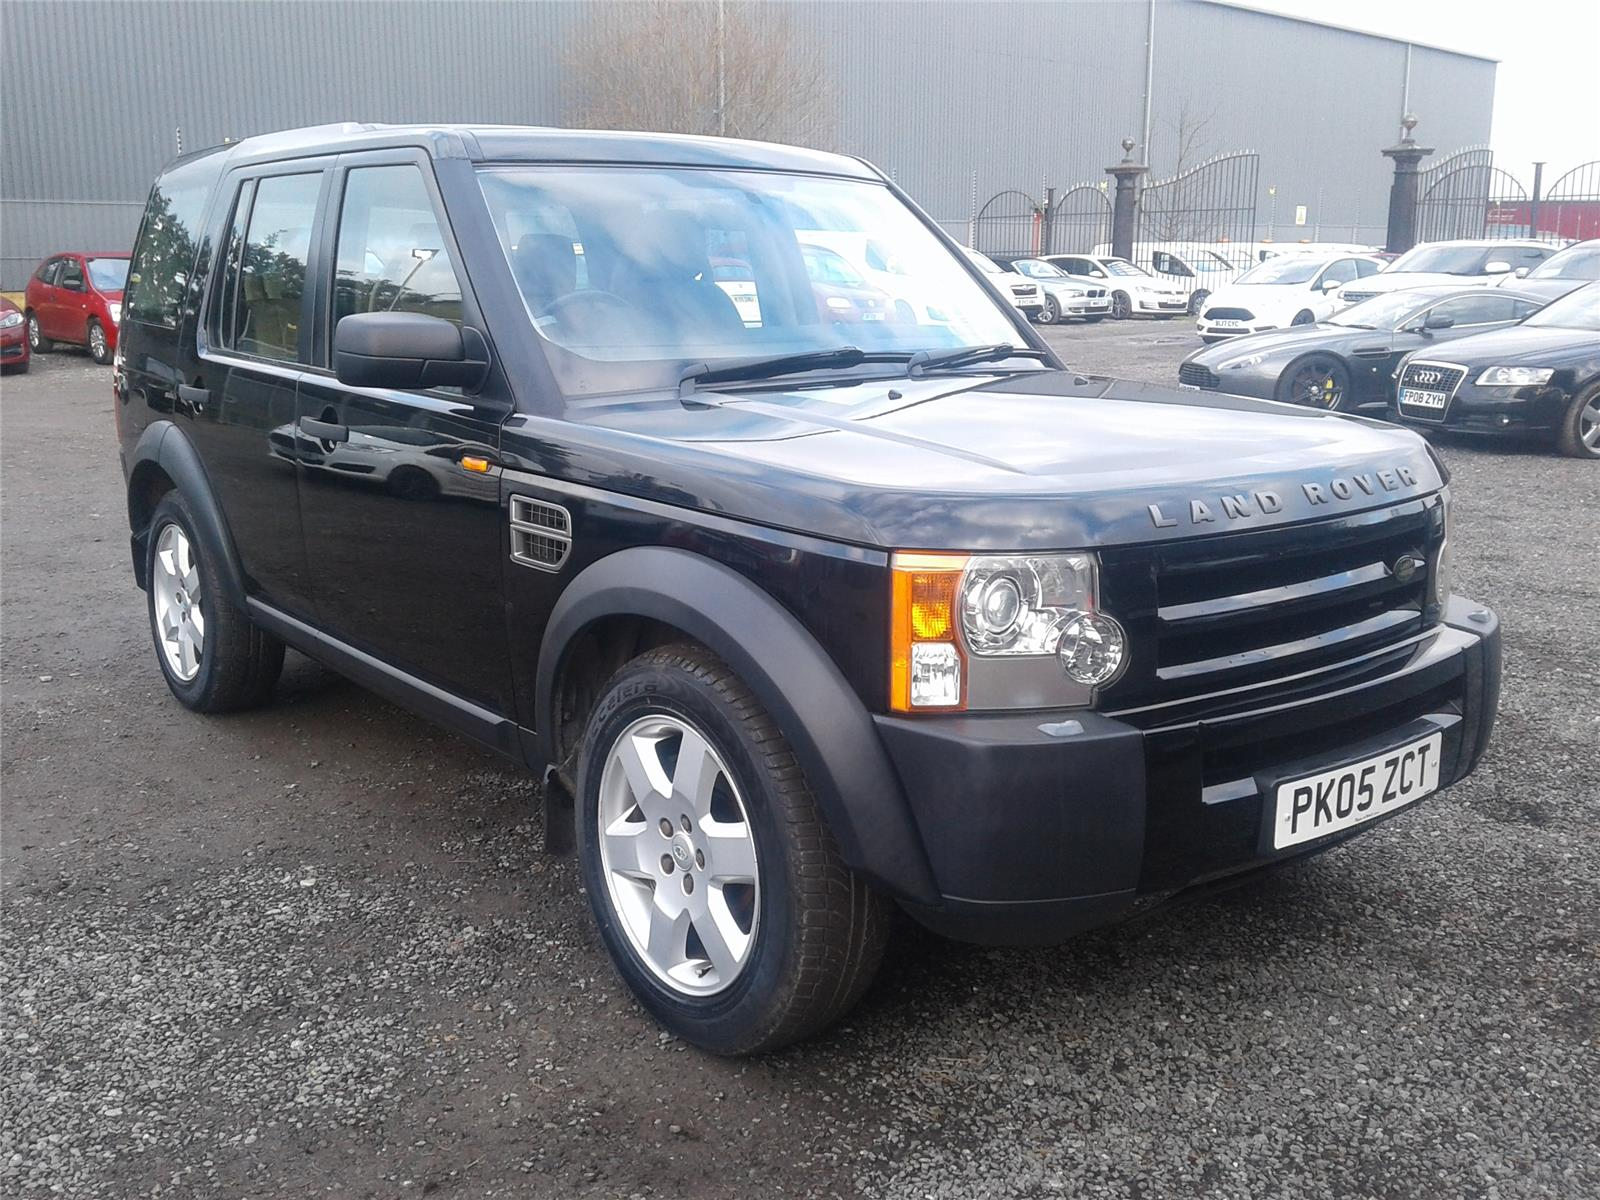 2005 Land Rover Discovery V8 SE 4394 Petrol Automatic 6 Speed 5 Door 4x4